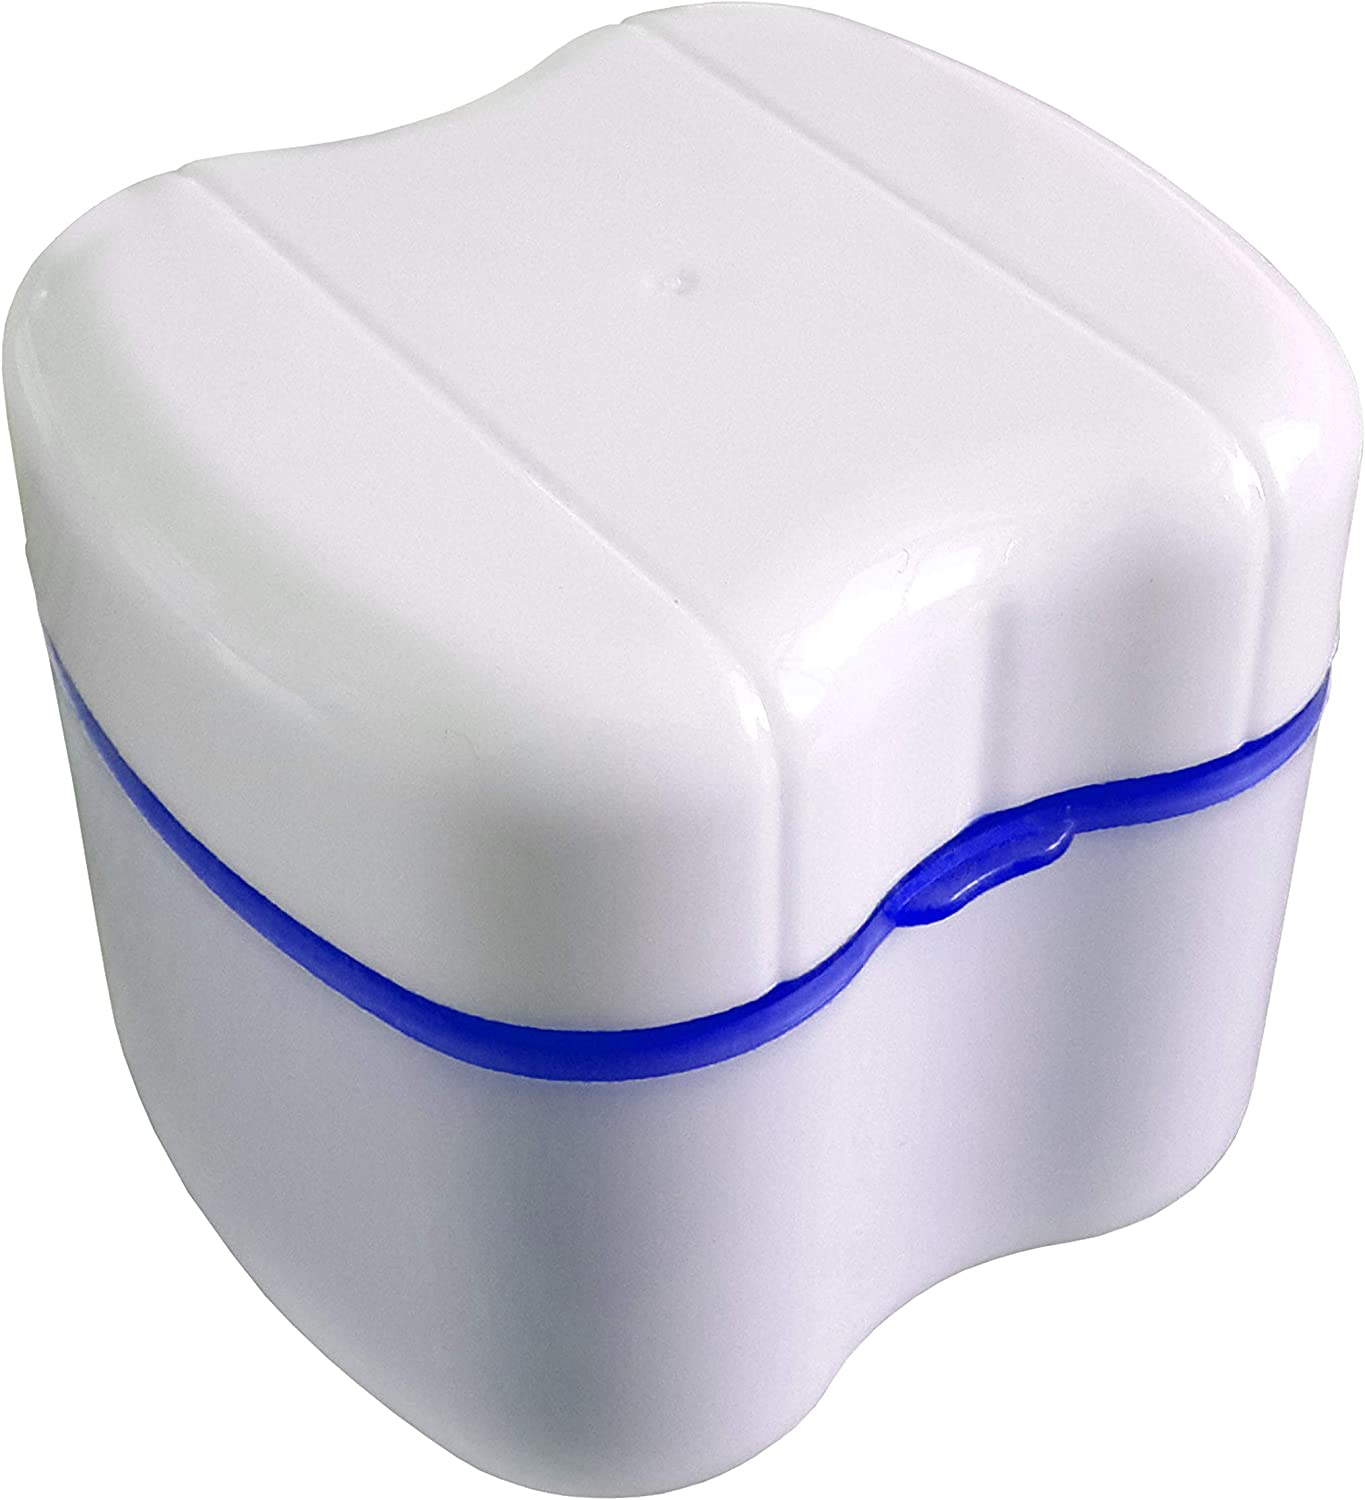 Strong Denture Box with Simple Retrieval Tab, Perfect To Safe Guard Dentures and Valuables, Easy To Open, Store and Retrieve (True Blue): Home & Kitchen